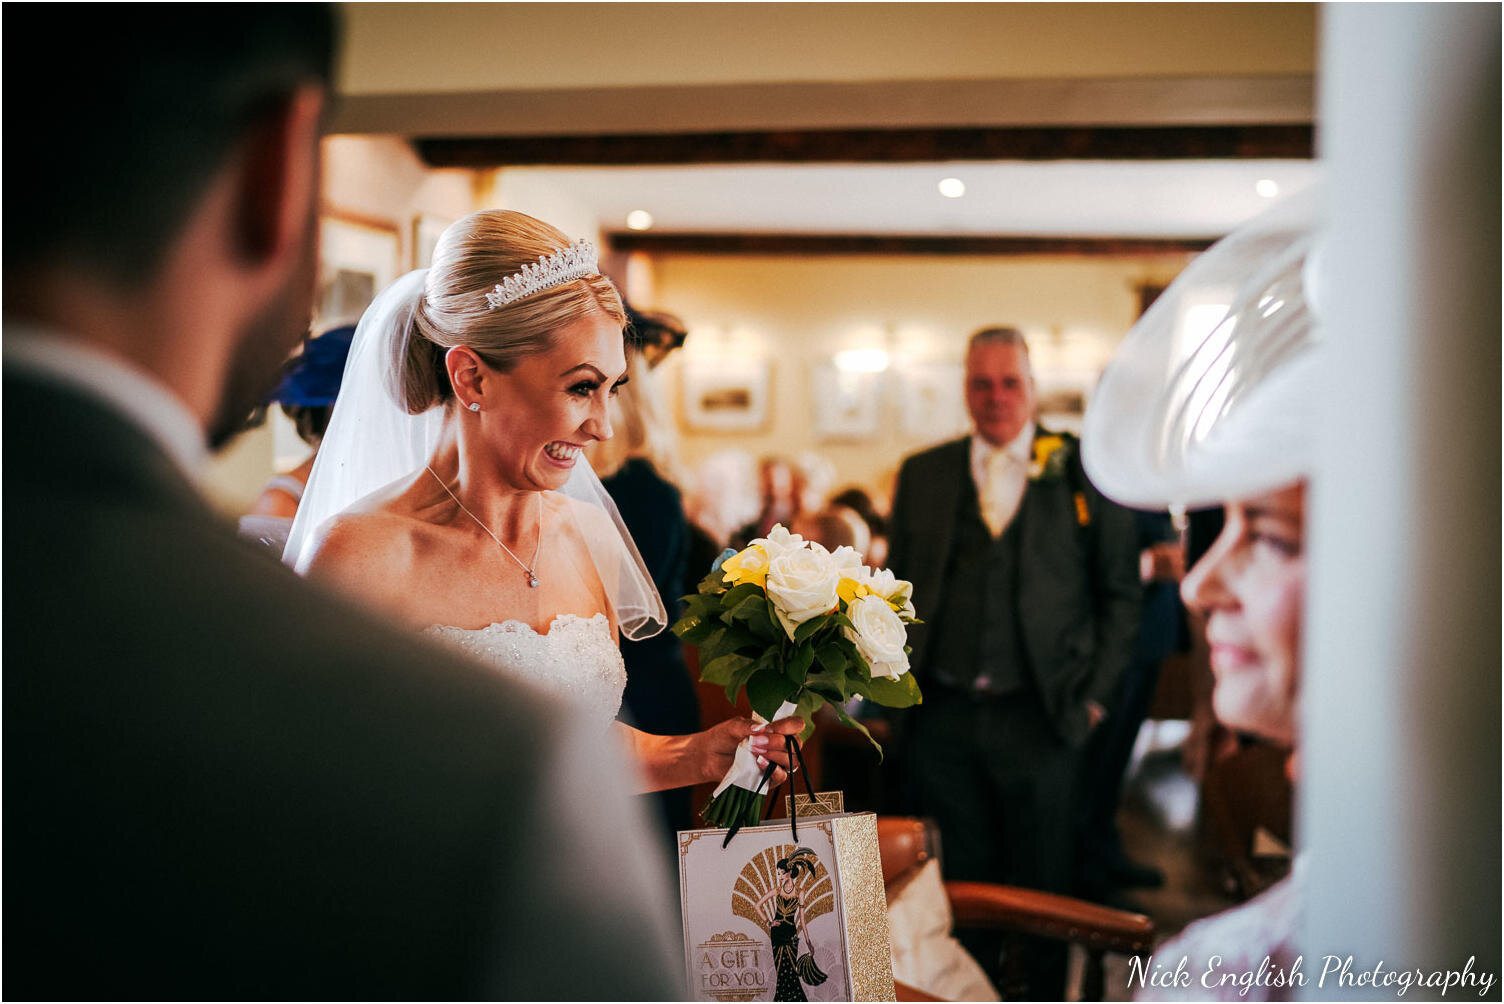 Falcon_Manor_Yorkshire_Wedding_Photographer-56.jpg